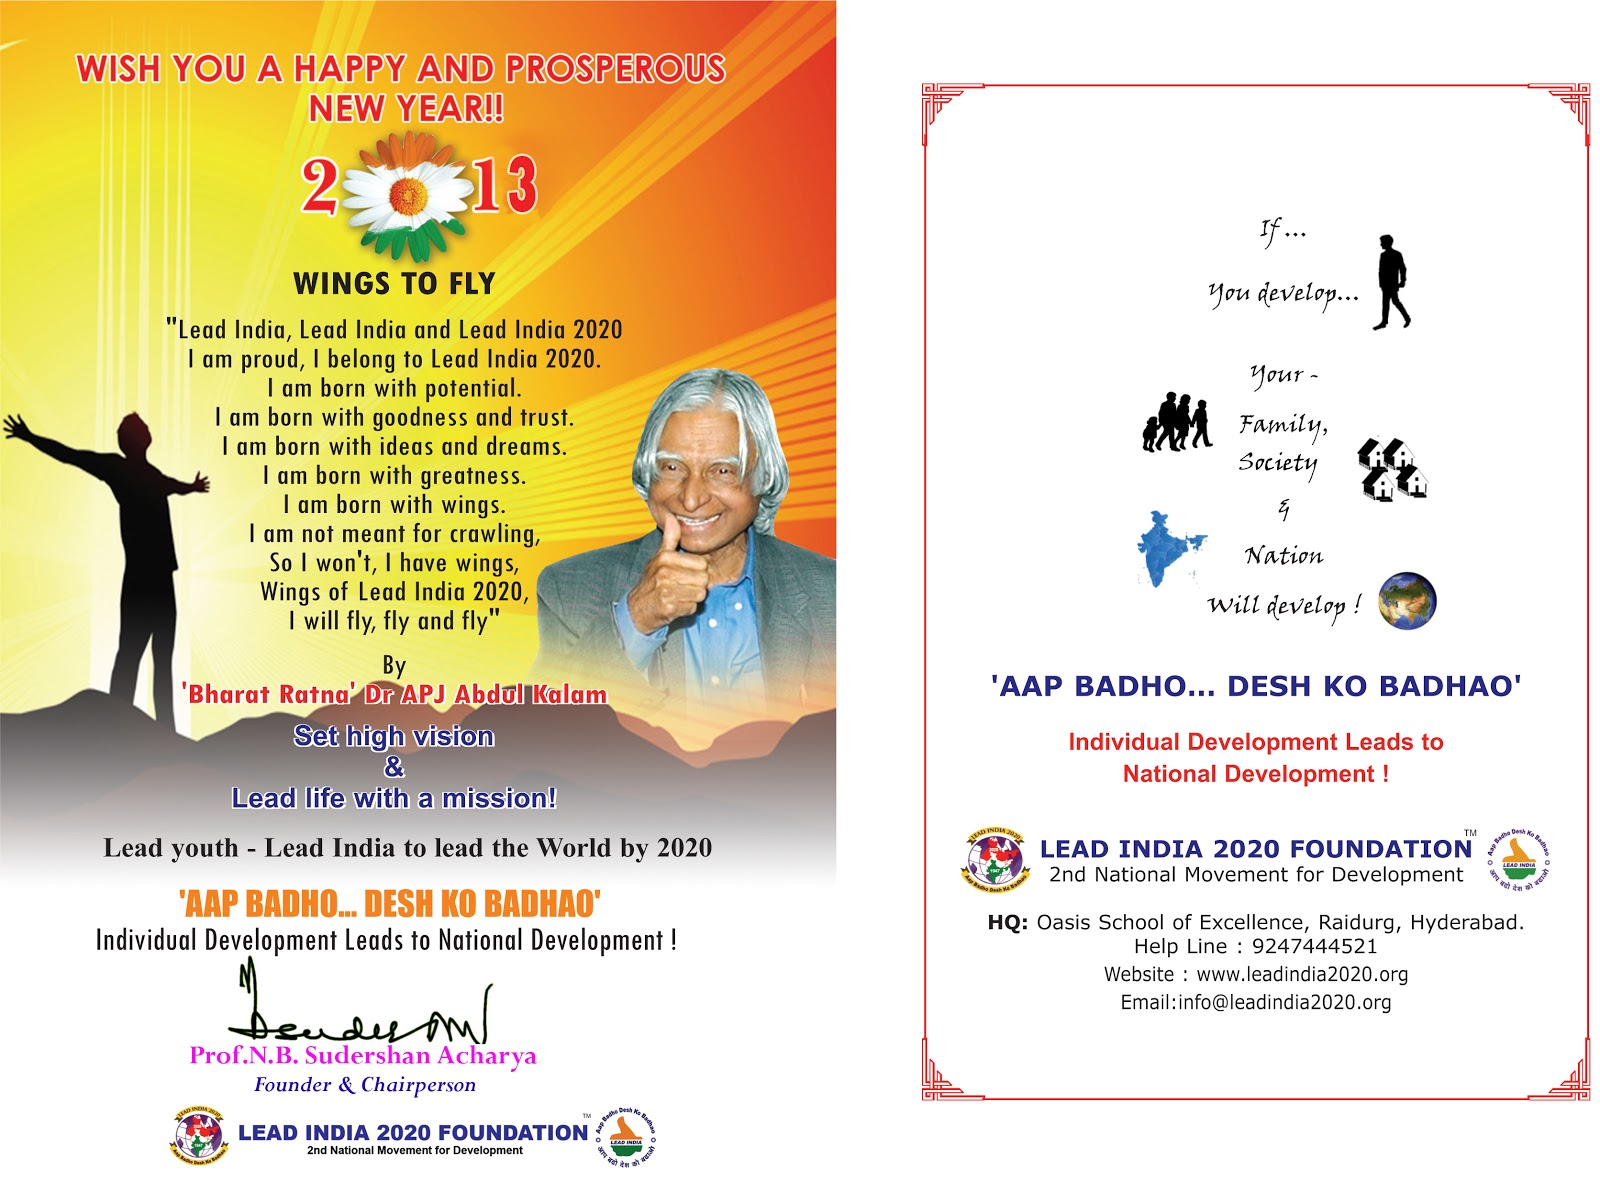 Lead India 2020 National Club Hyderabad New Year Greetings